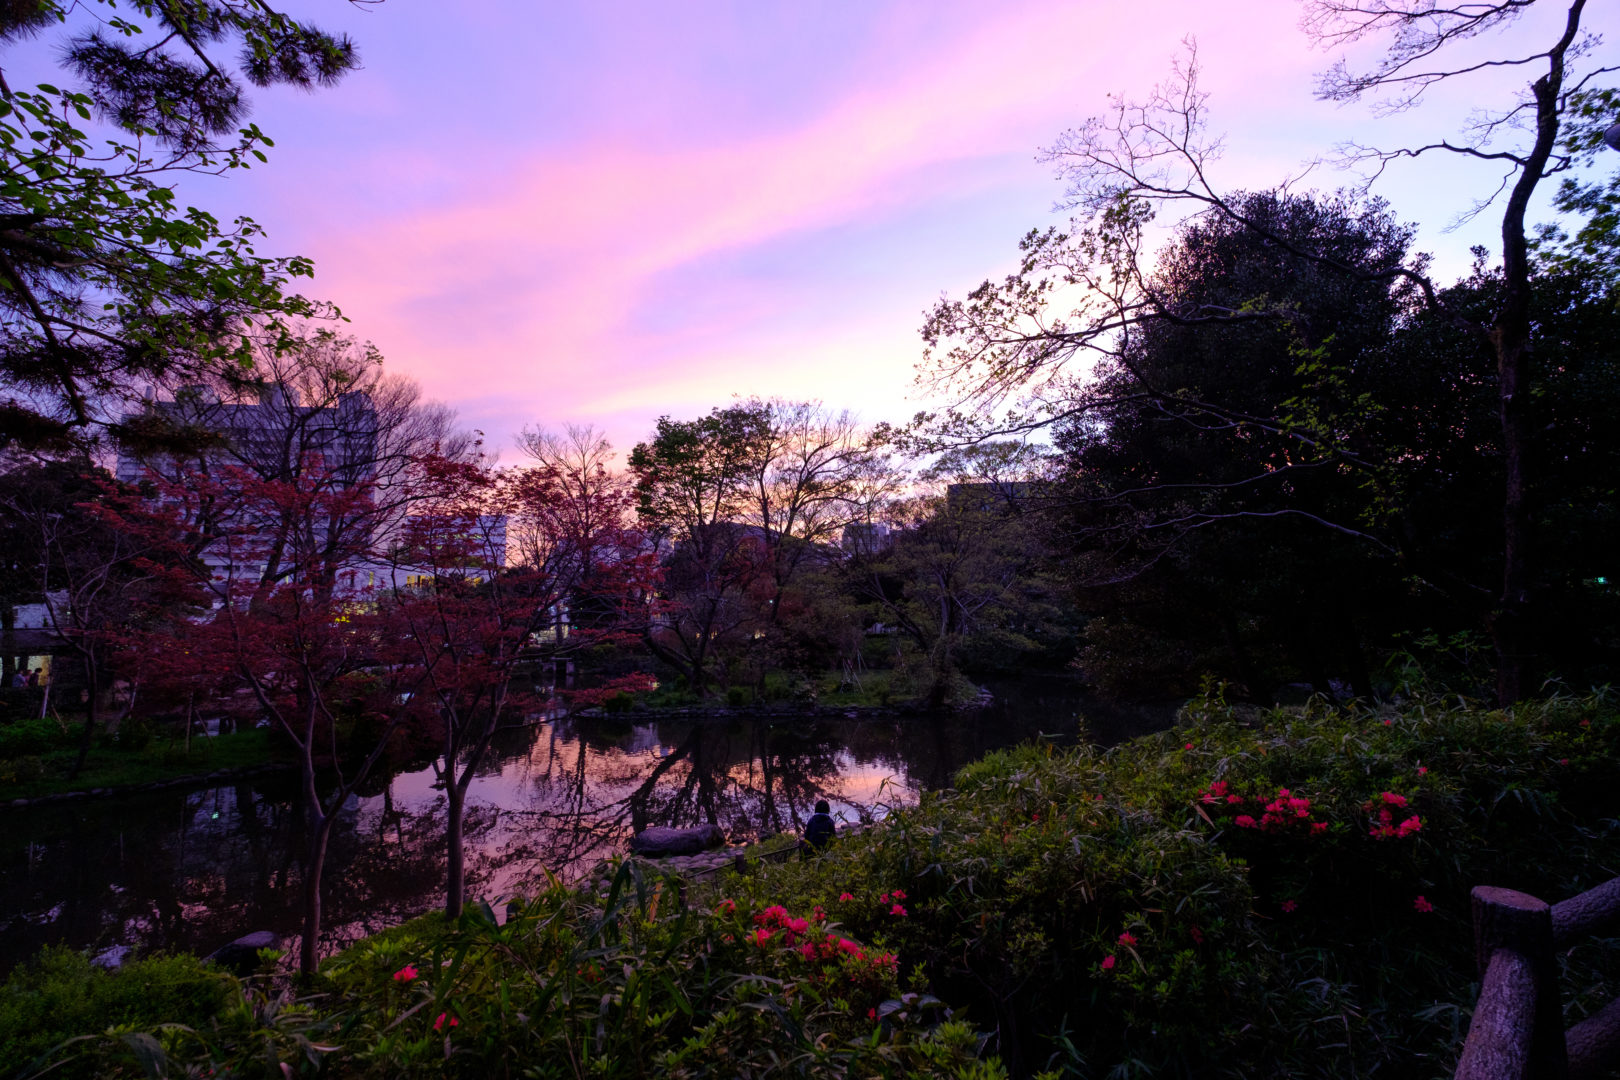 A beautiful purple sunset looking over the pond at Arasugawanomiya Memorial Park in Roppongi Hills, Tokyo